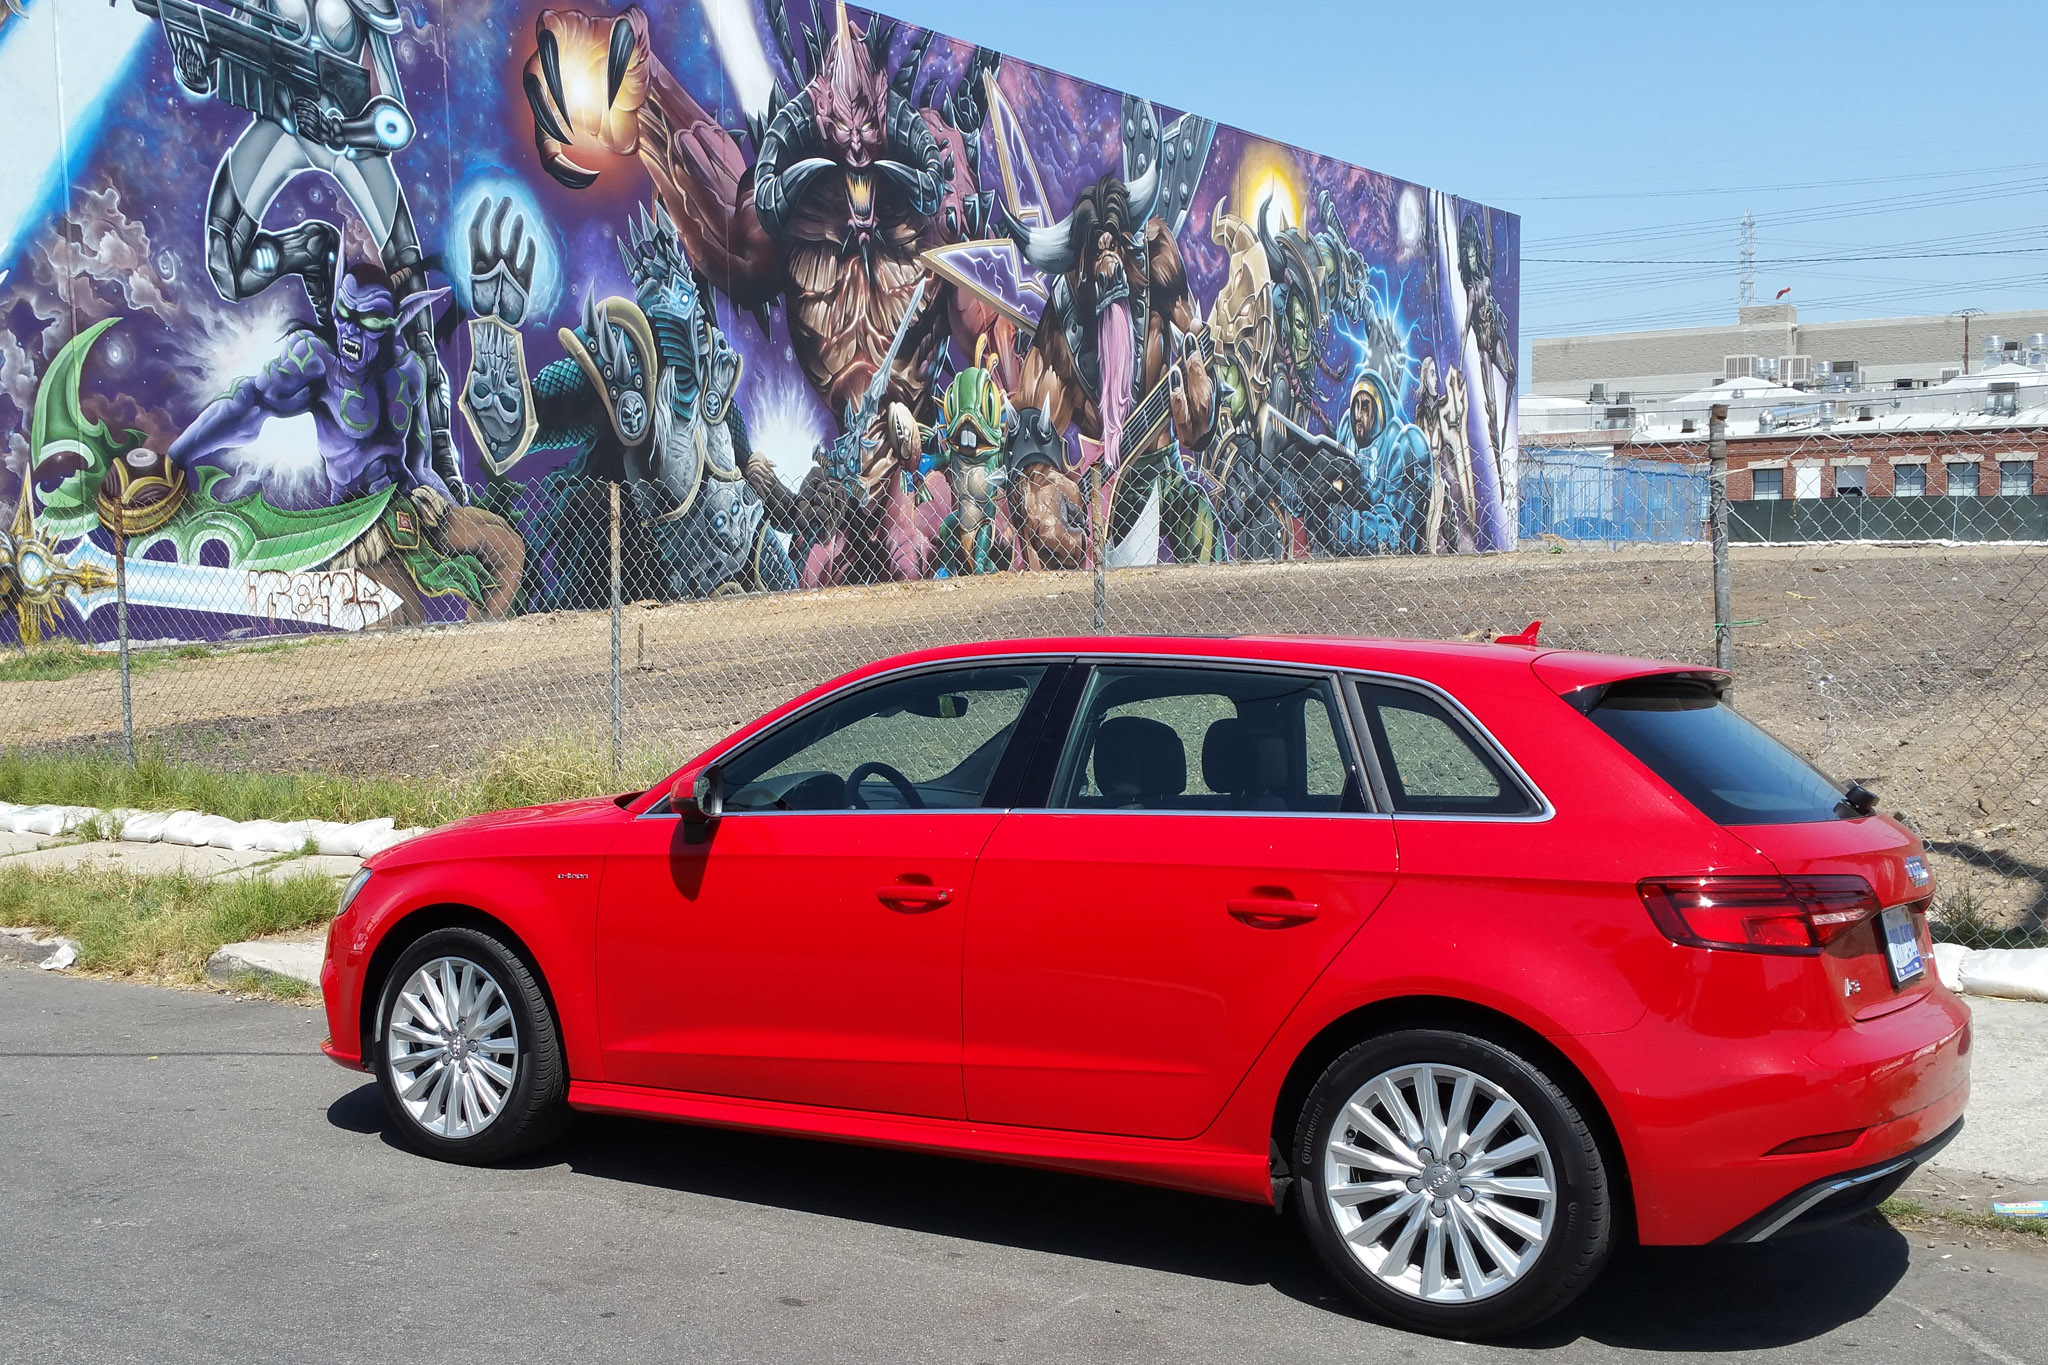 One week with 2017 audi a3 sportback e tron 14t fwd s tronic looks wise the four door hatch appears more humpback shaped than sporty from the side profile the body looks a bit short for its 1035 inch wheelbase altavistaventures Gallery